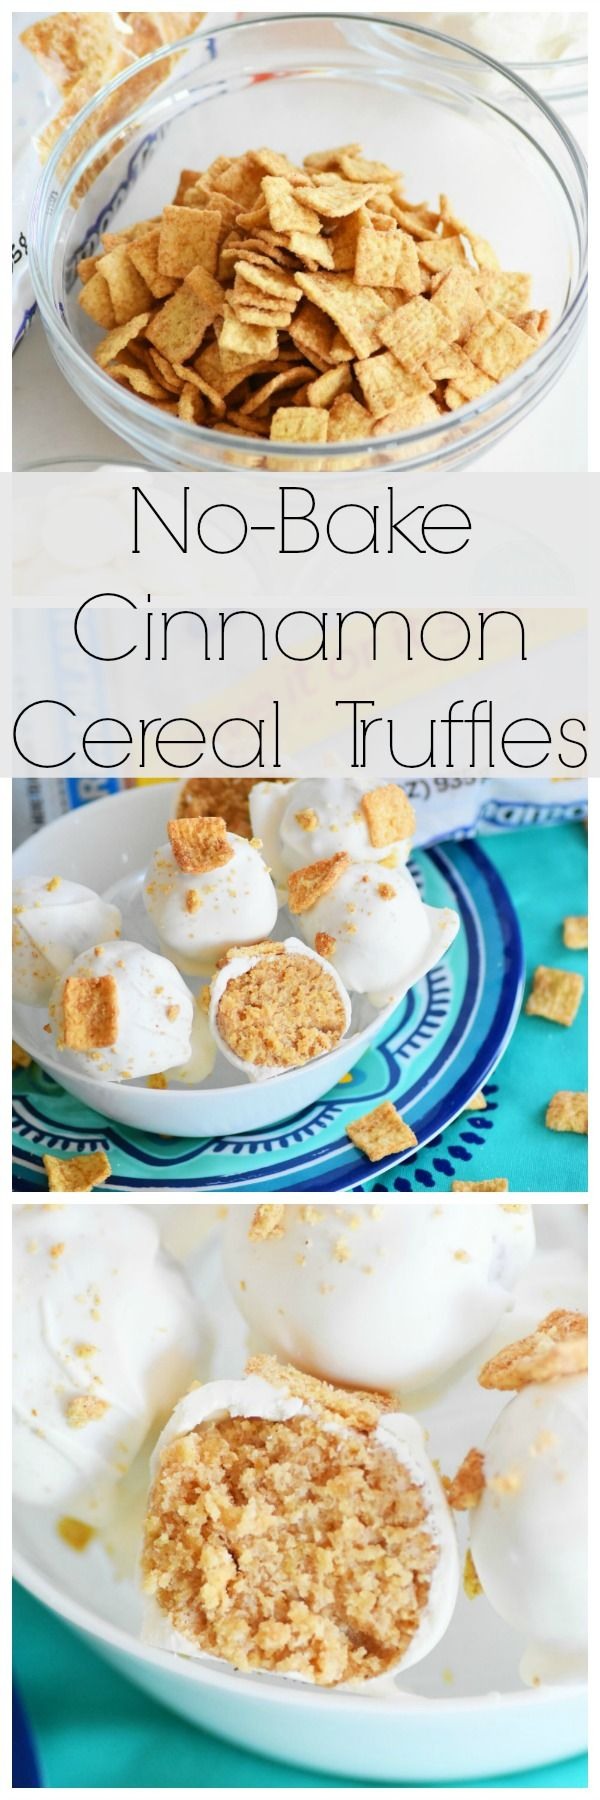 No-Bake Cinnamon Cereal Truffles featuring @maltomealcereal. Ideal dessert for the summer weather since no oven is required. AD